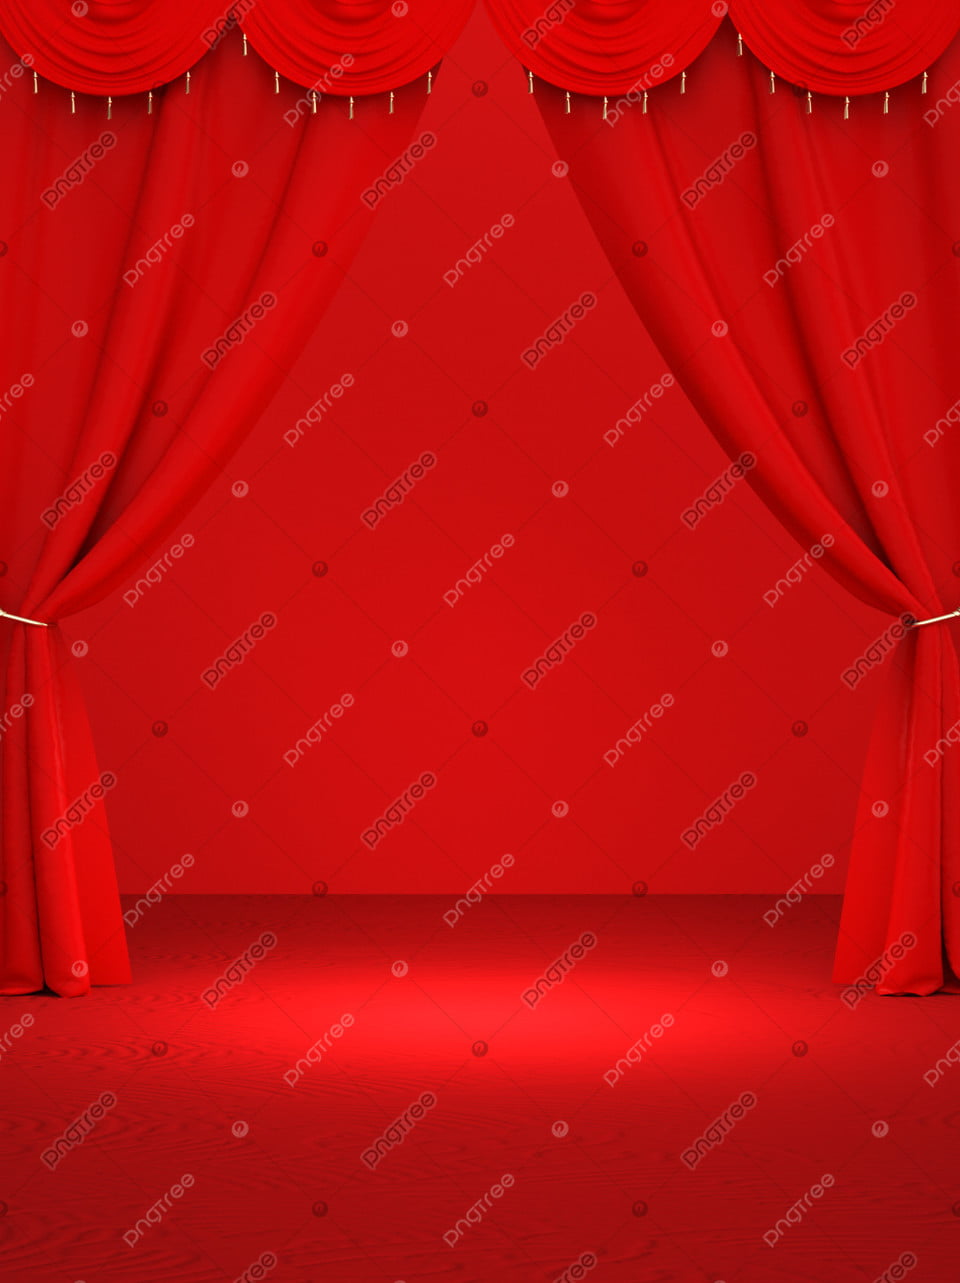 red curtain and award background award presentation film and television awards grammy background image for free download red curtain and award background award presentation film and television awards grammy background image for free download